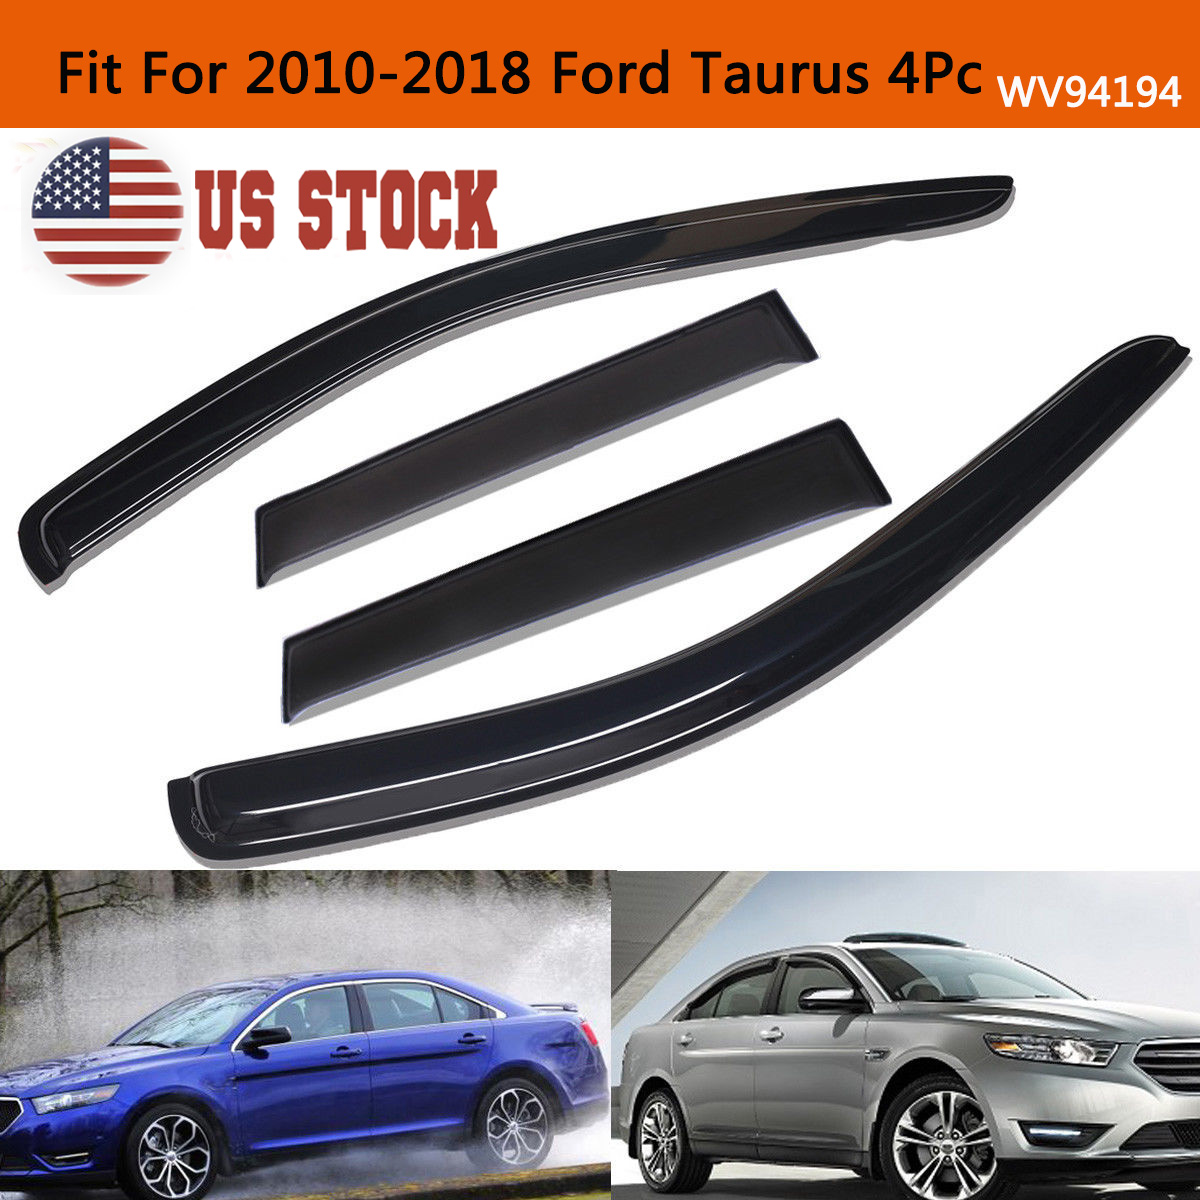 Details about Smoke Window Visor Sun Rain Guards Vent Shade Fit For  2010-2018 Ford Taurus 4Pc 499e64410e8cc